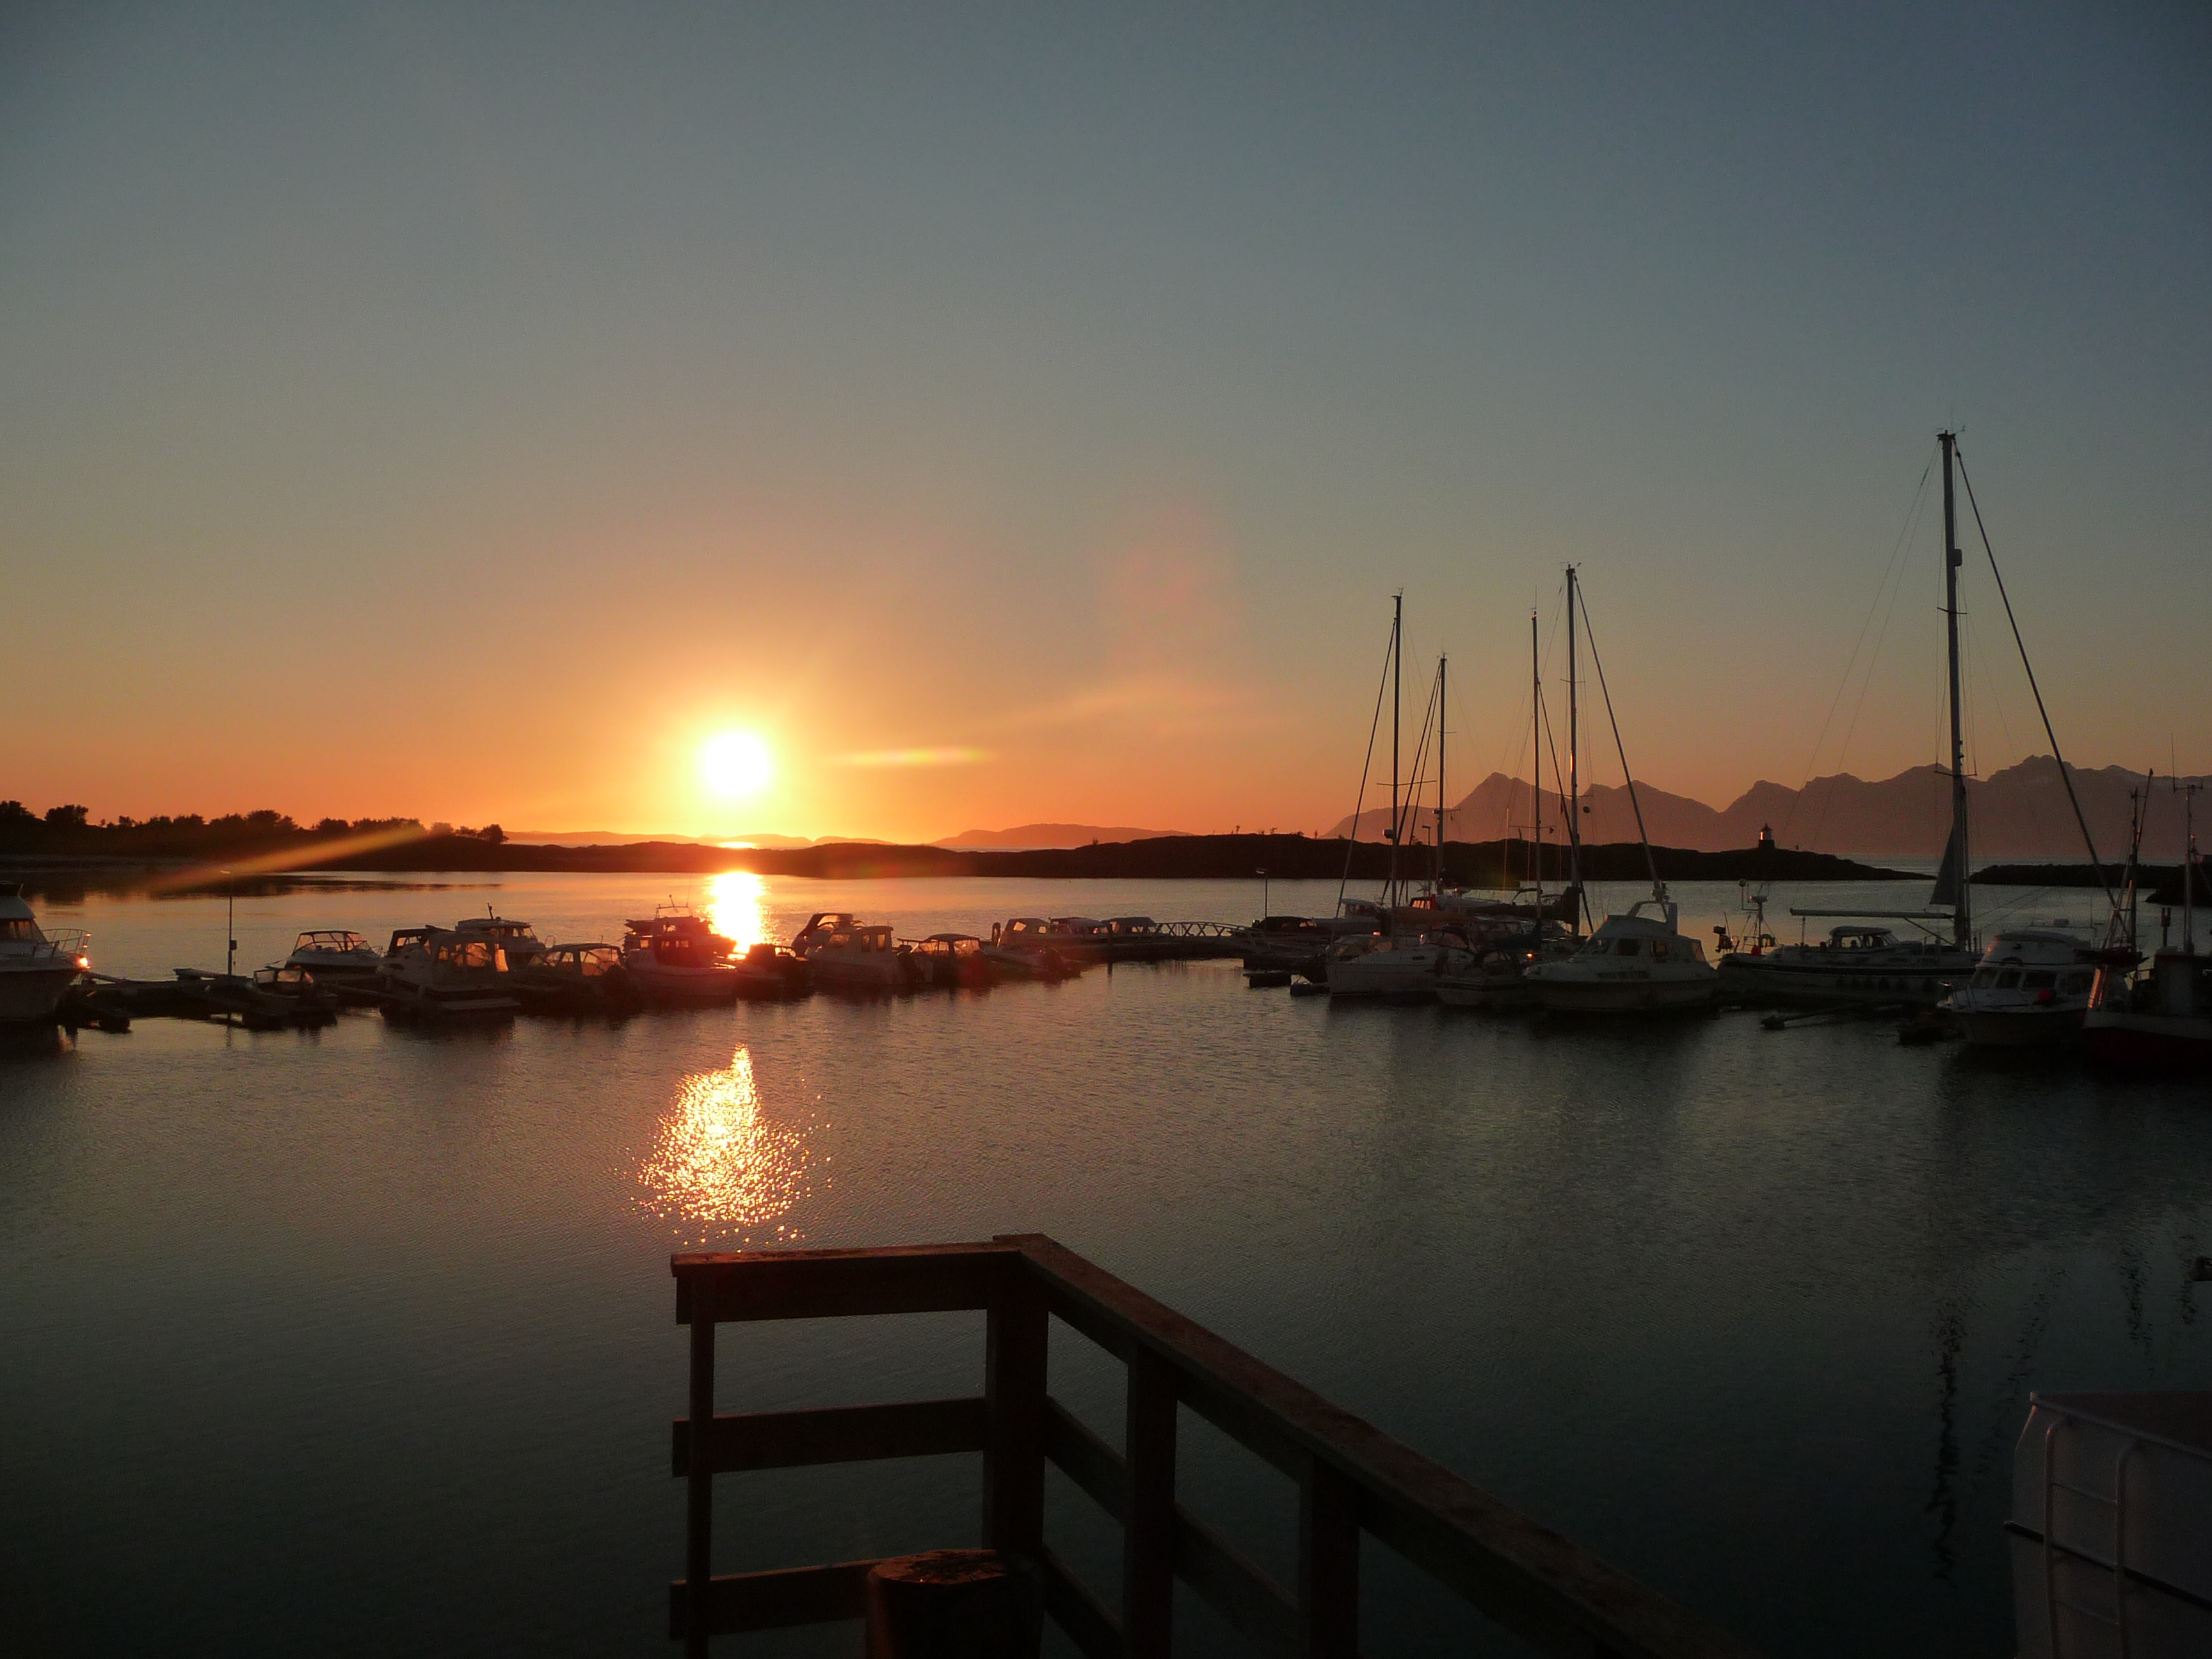 Midnight sun in the Lofoten